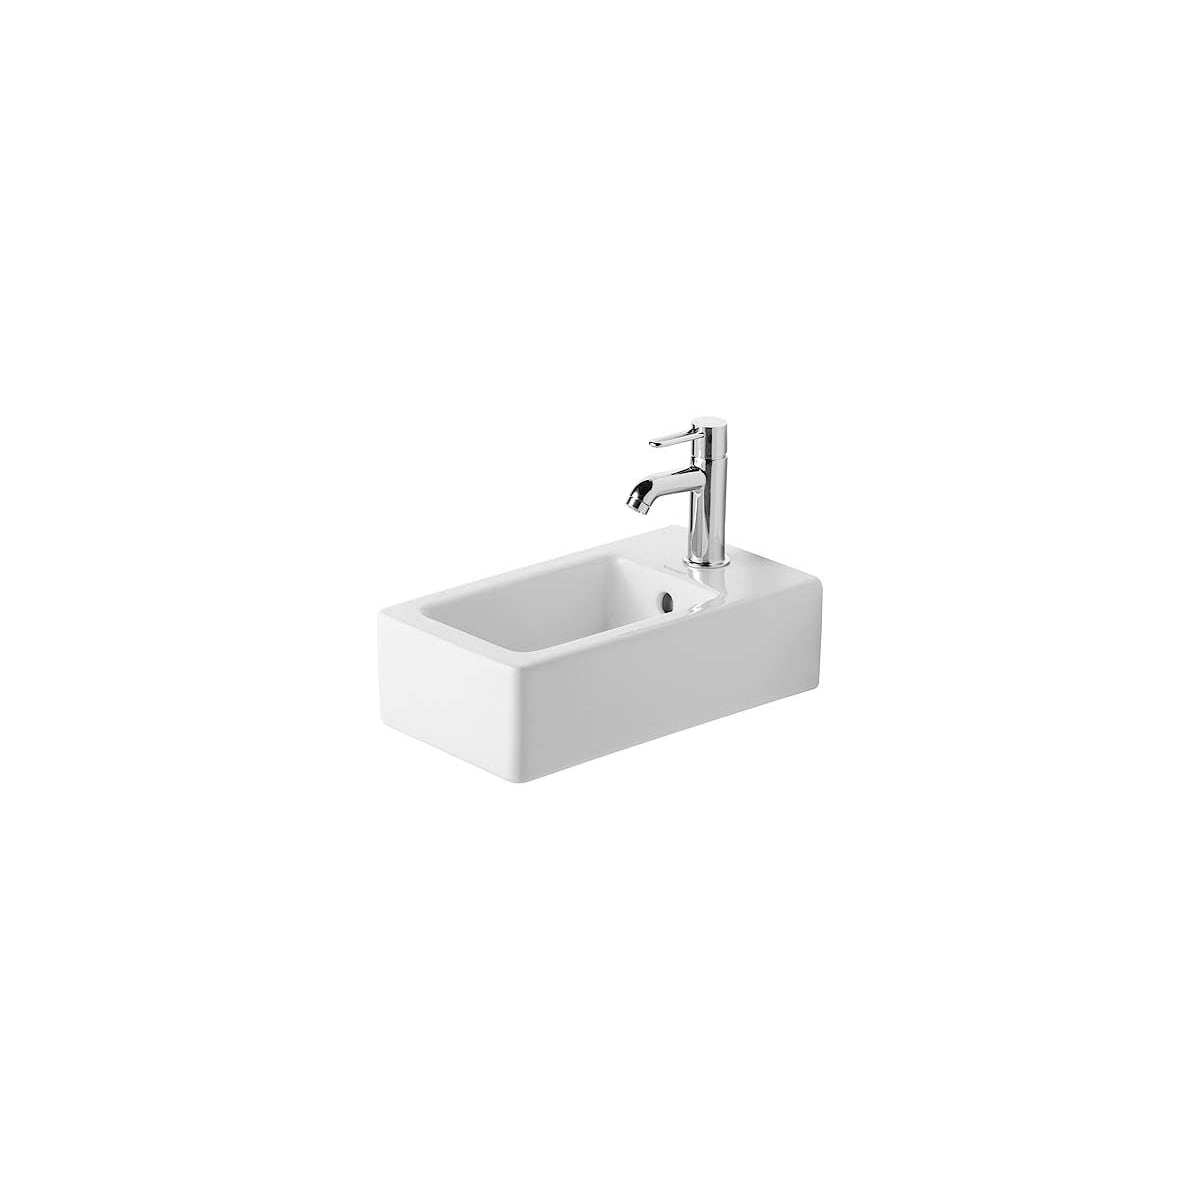 Duravit 0702250000 White Glazed Underside Vero 9 7 8 Rectangular Ceramic Wall Mounted Bathroom Sink With Overflow And 1 Faucet Hole Faucetdirect Com